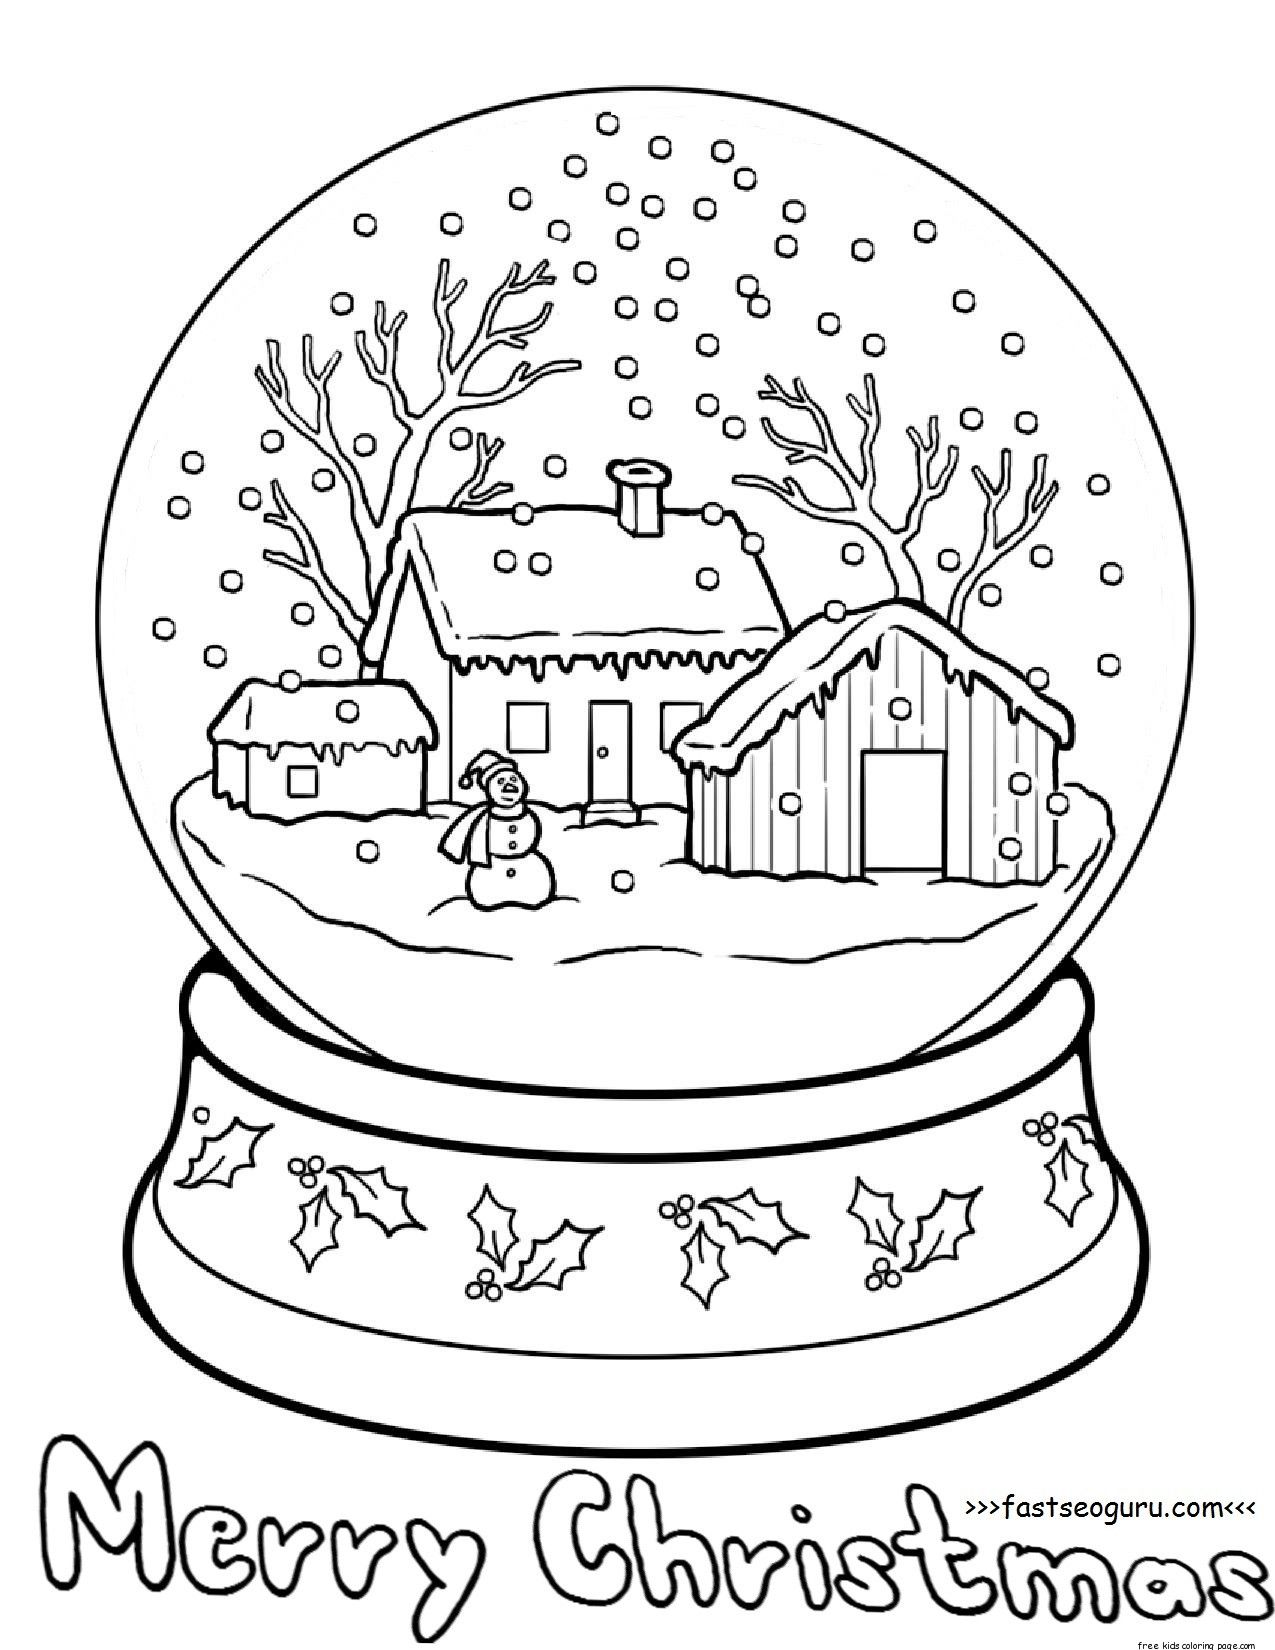 Printble christmas snow globe coloring pages for kids | Coloring pages  winter, Christmas coloring pages, Coloring books